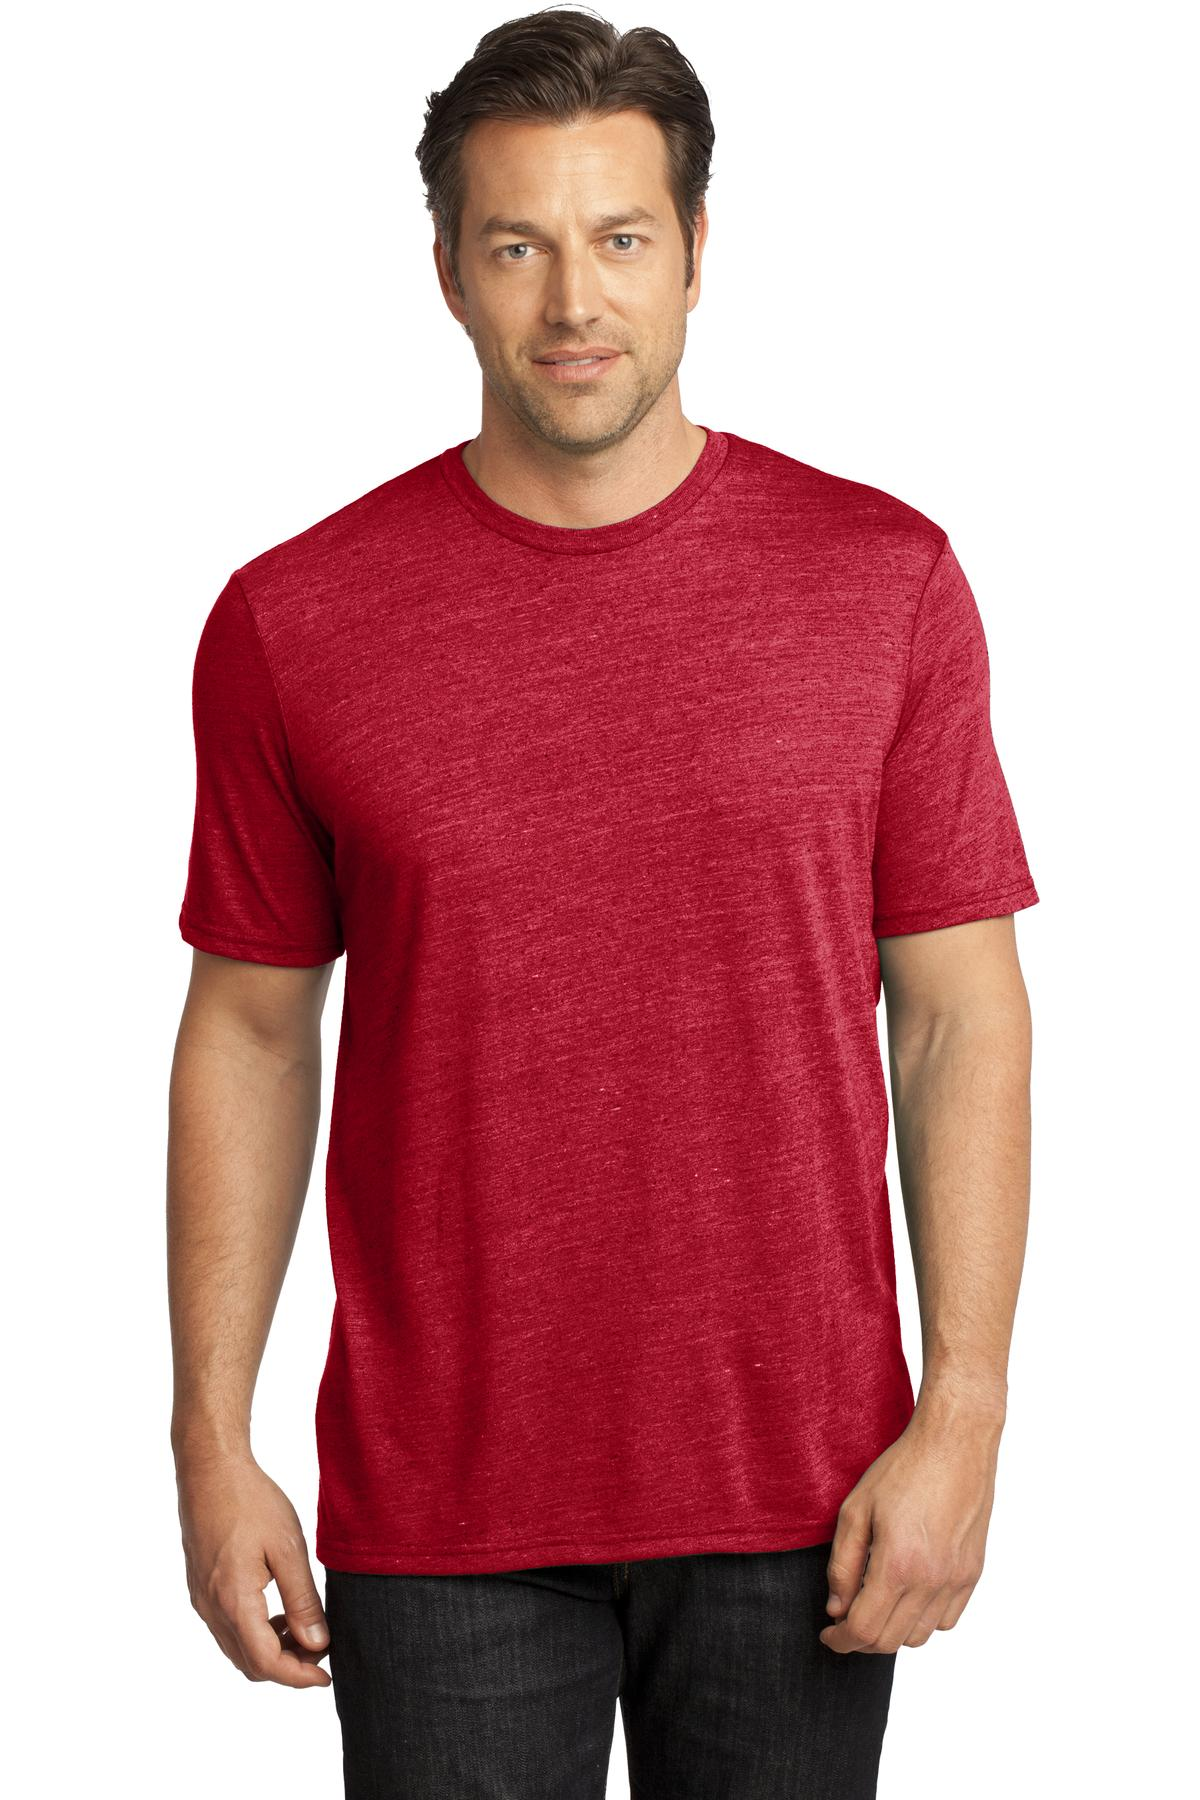 CLOSEOUT District Made - Mens Textured Crew Tee. DM370